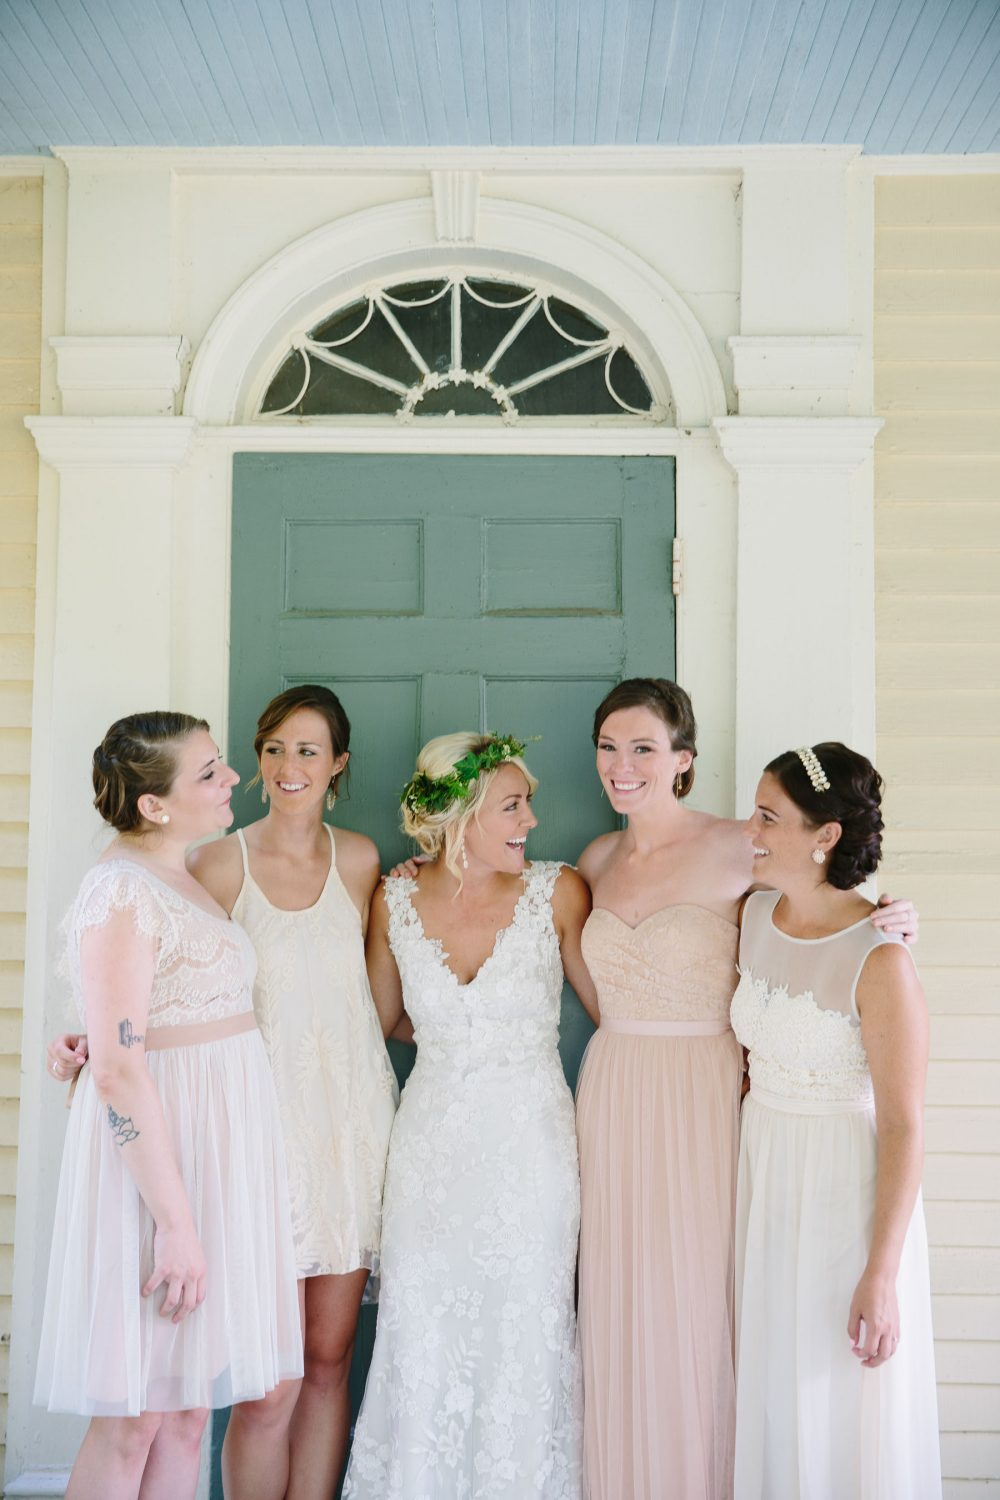 008-boho-floral-crown-historic-mansion-wedding